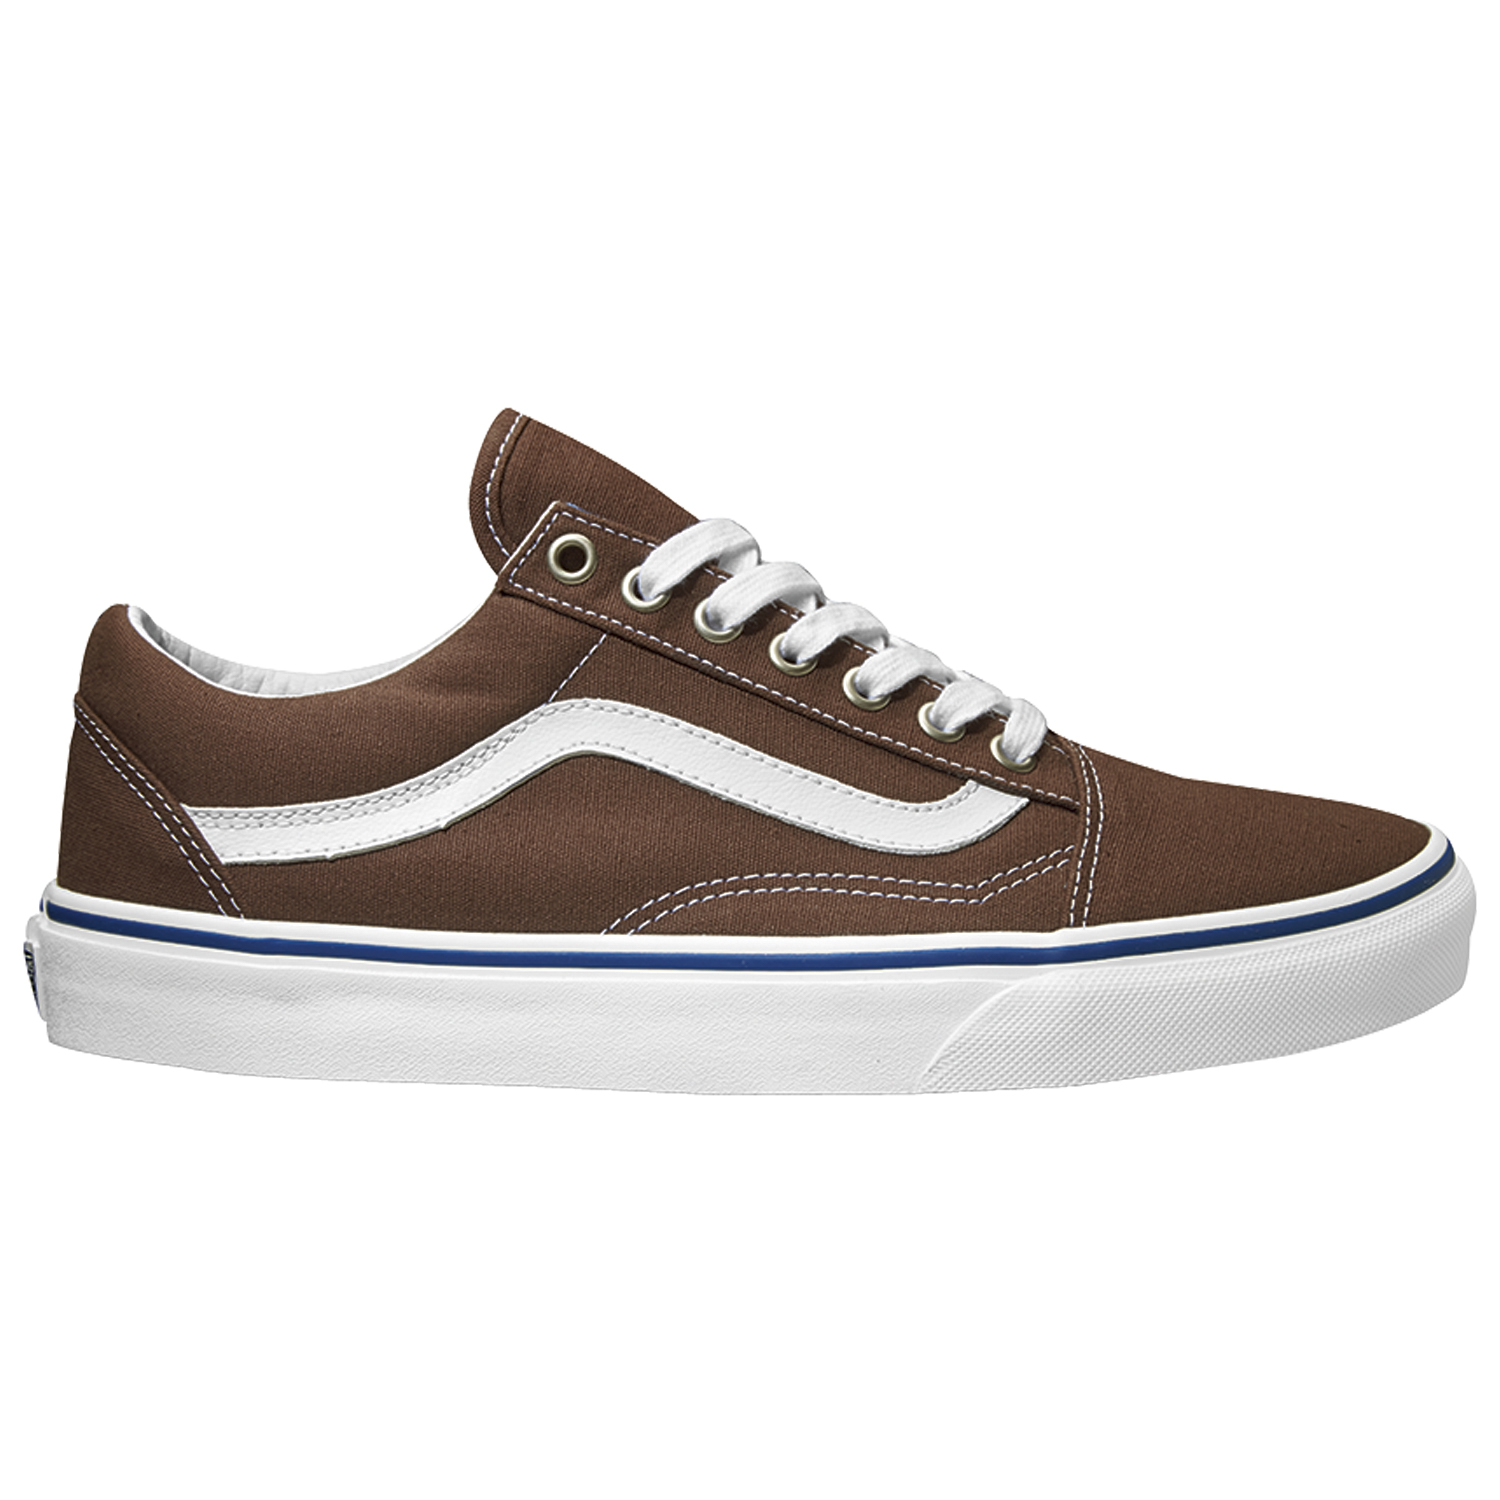 vans-old-skool-chestnut-true-white-129-90